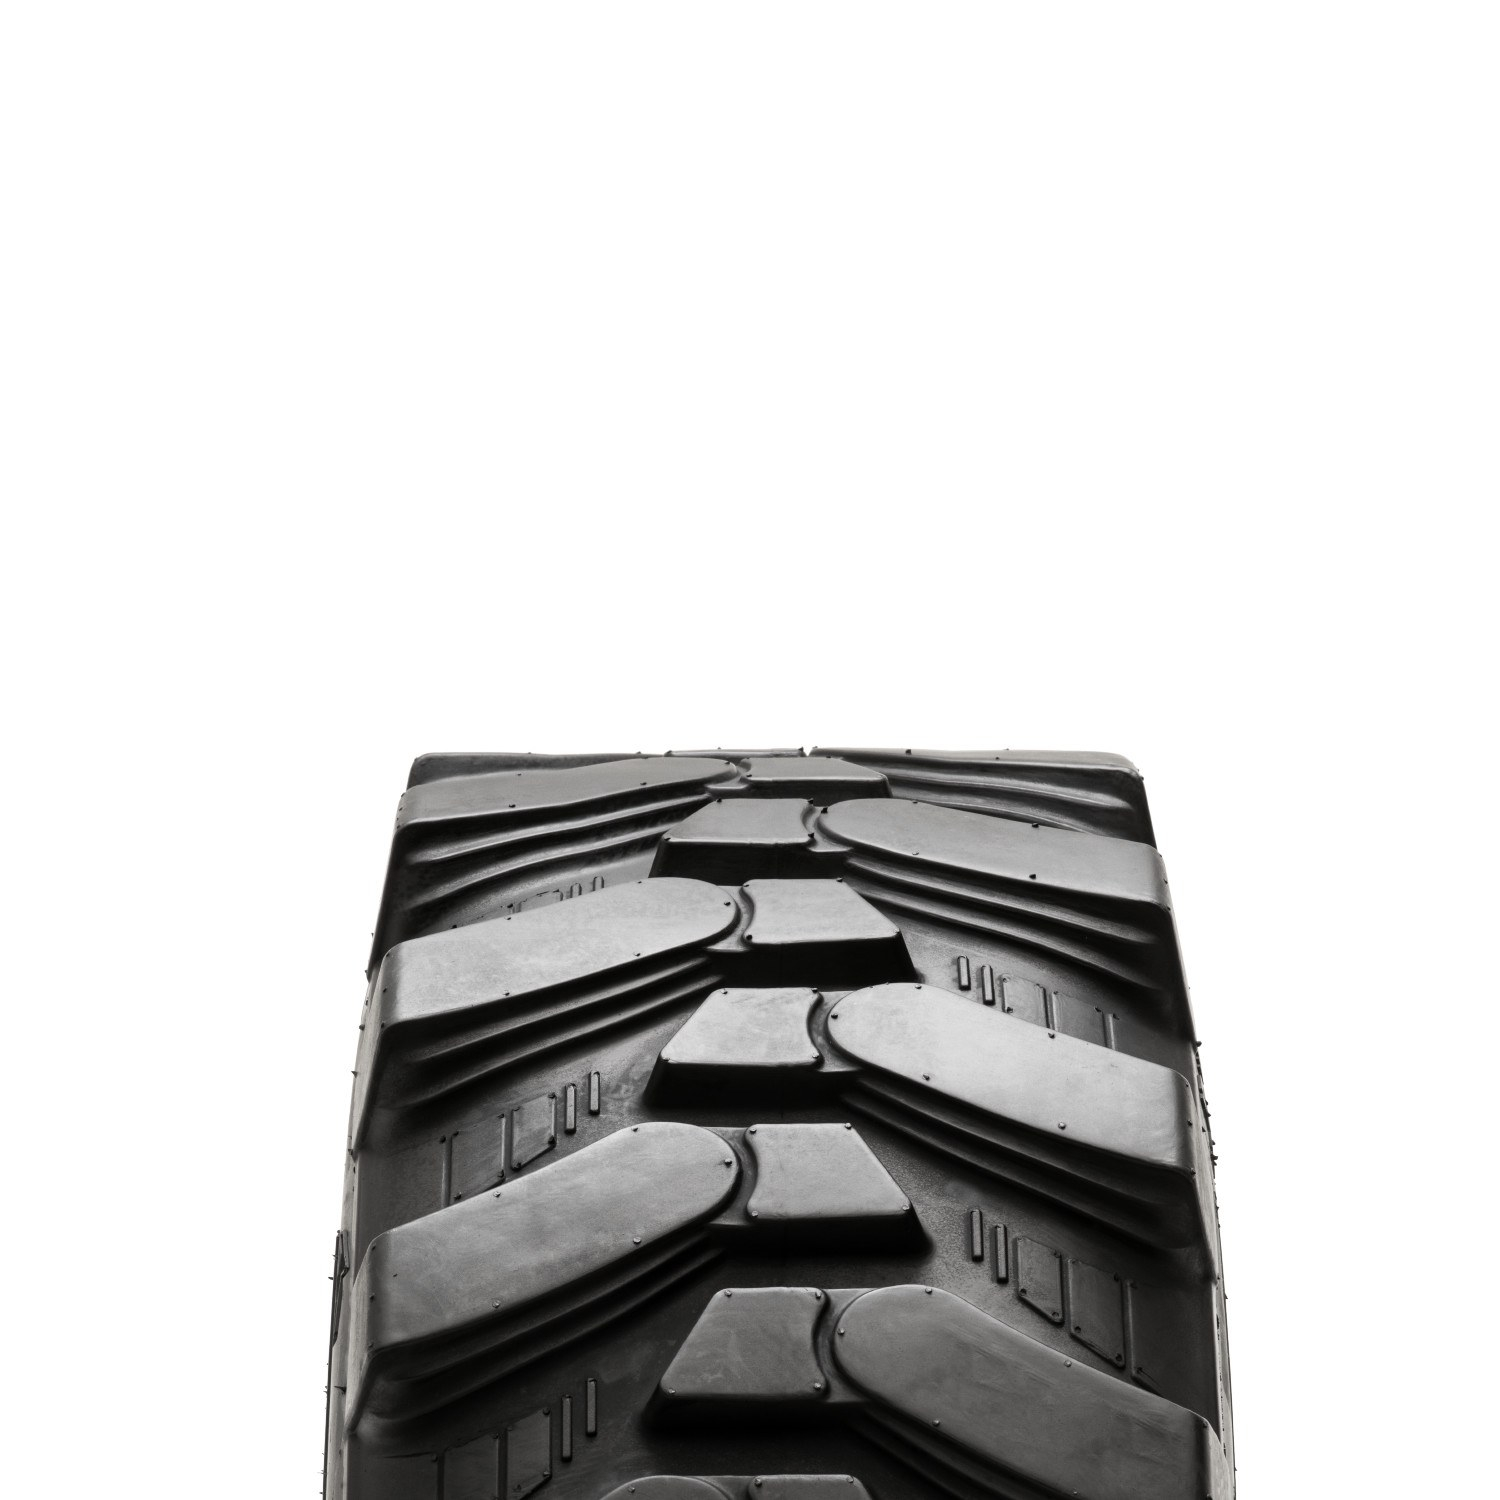 Gomme Nuove Camso 12 - 16.5 R0 12PR SKS 532 STANDARD NHS pneumatici nuovi Estivo